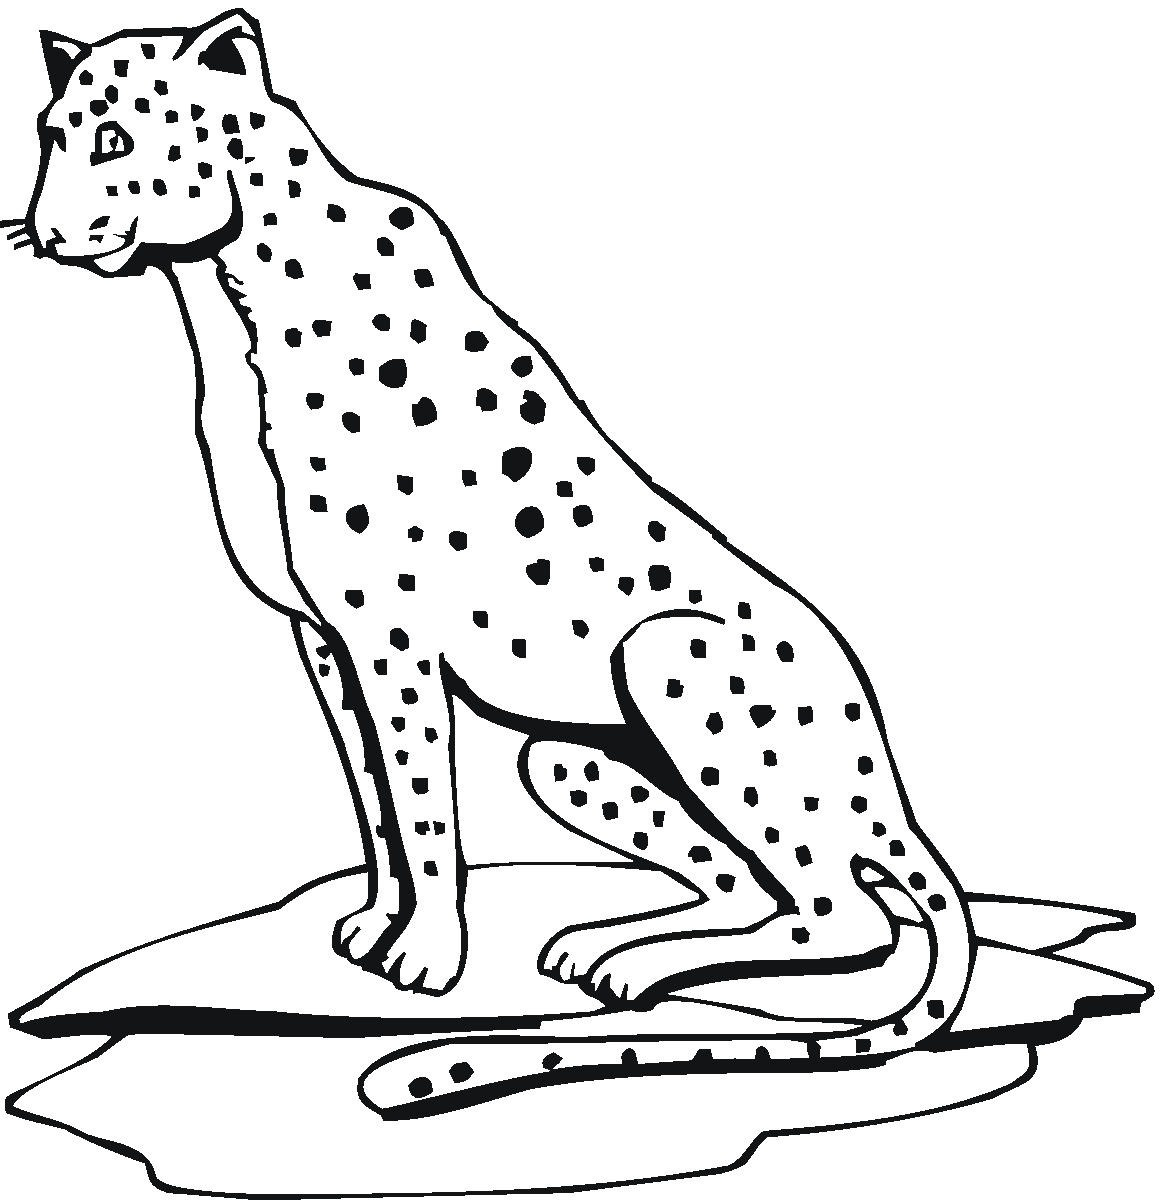 Free Printable Cheetah Coloring Pages For Kids - Free Printable Cheetah Pictures